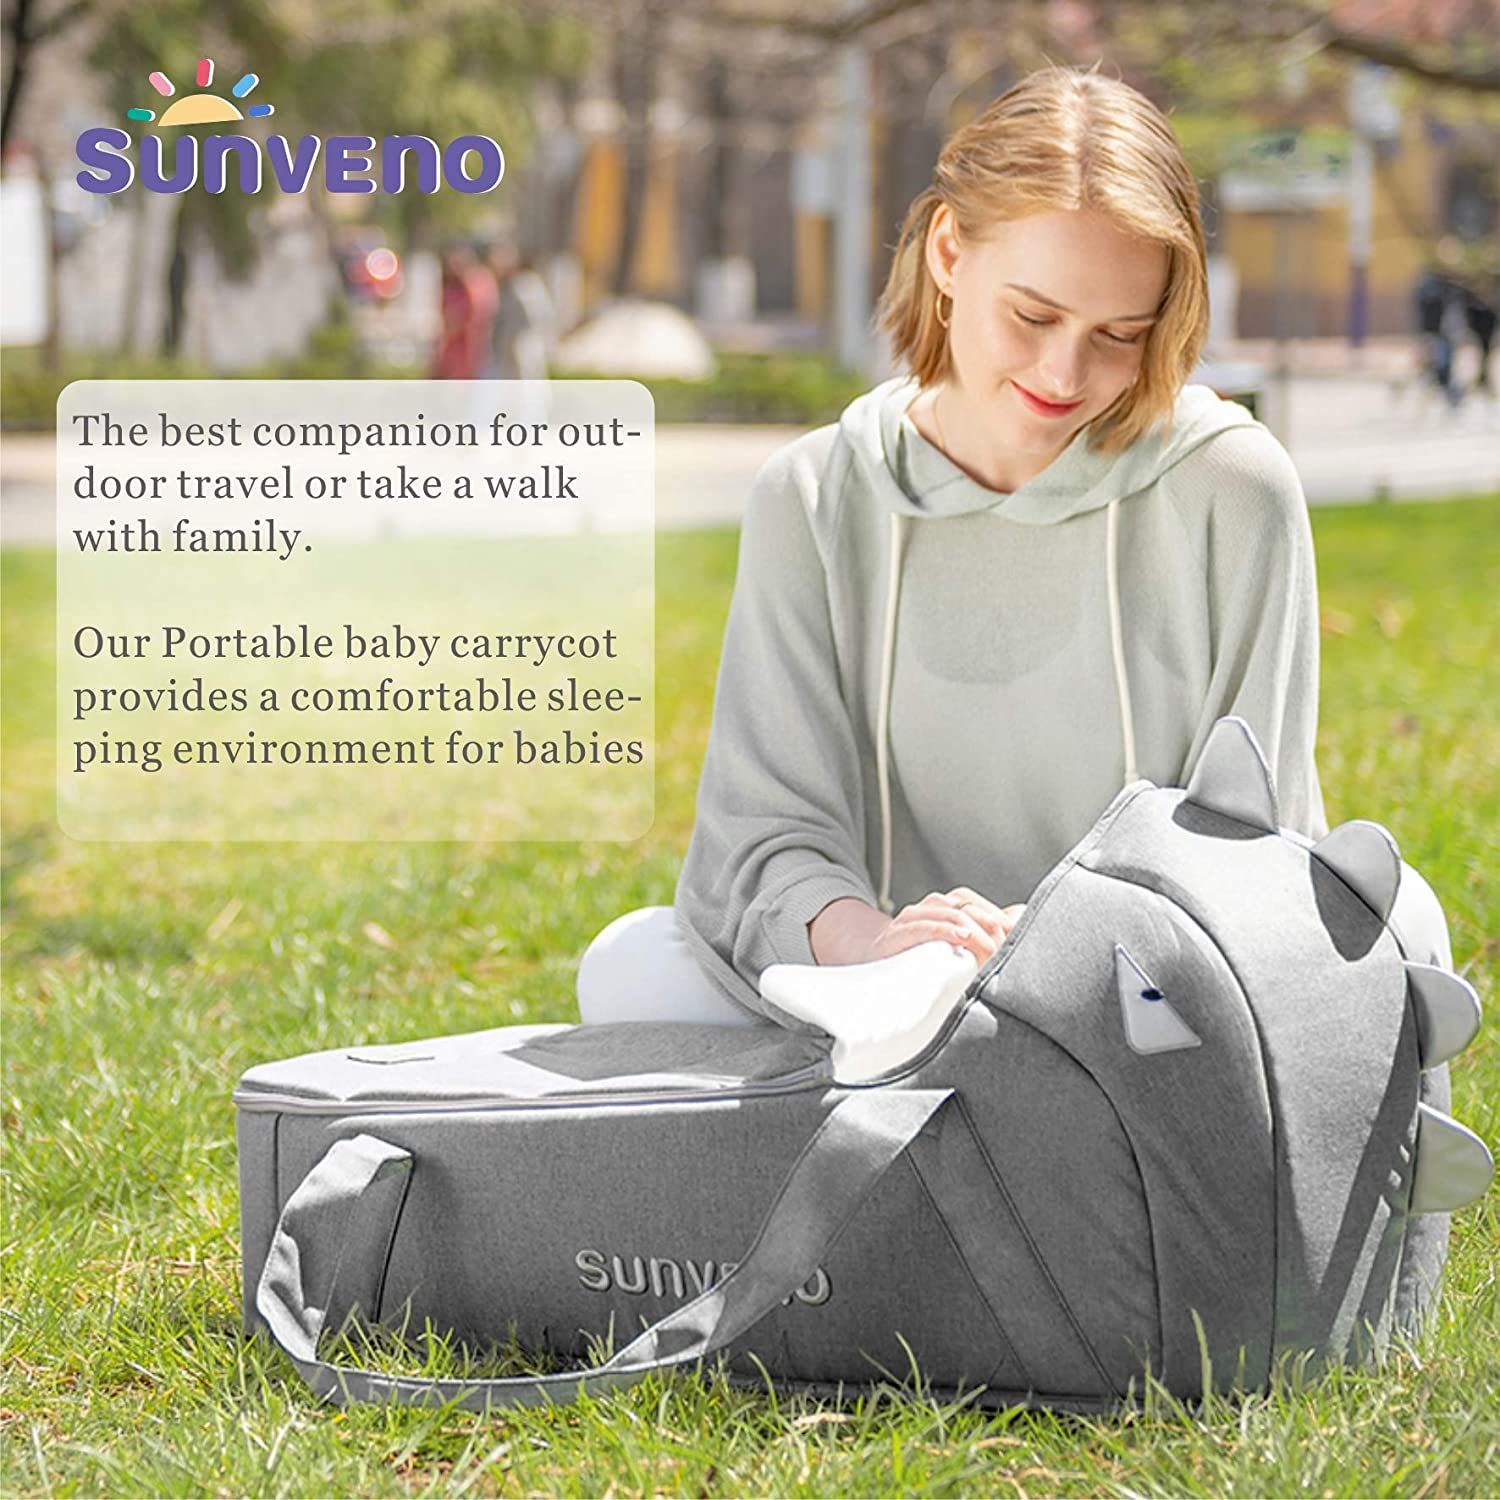 SUNVENO Baby Bed Baby Lounger, Moses Basket Bassinet Bedside Sleeper Newborn Infant Travel Bed Carrycot for 0-12 Months Gray